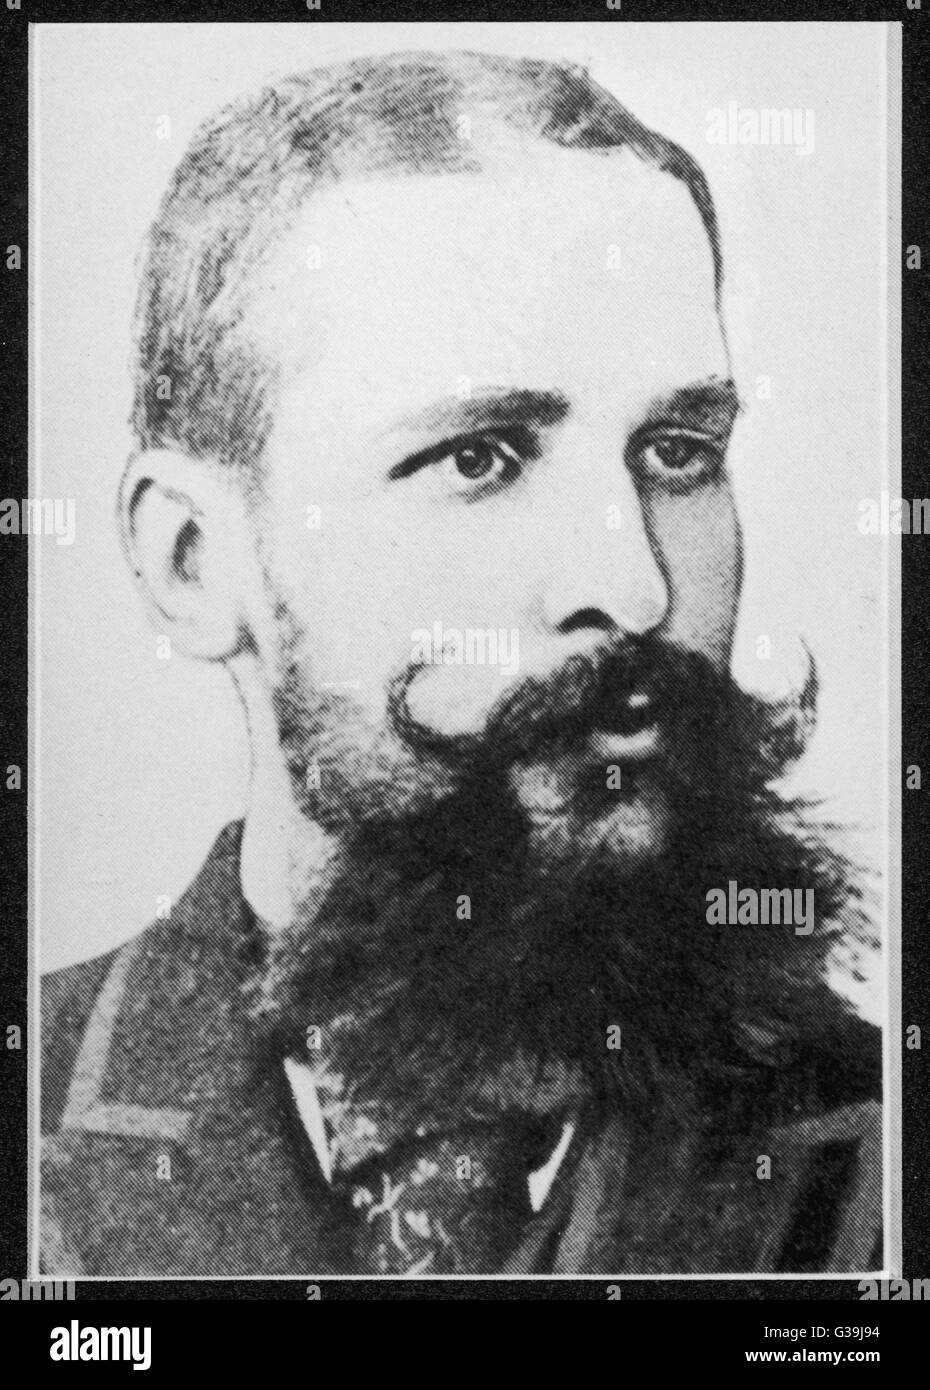 Who killed Stolypin and why by the way